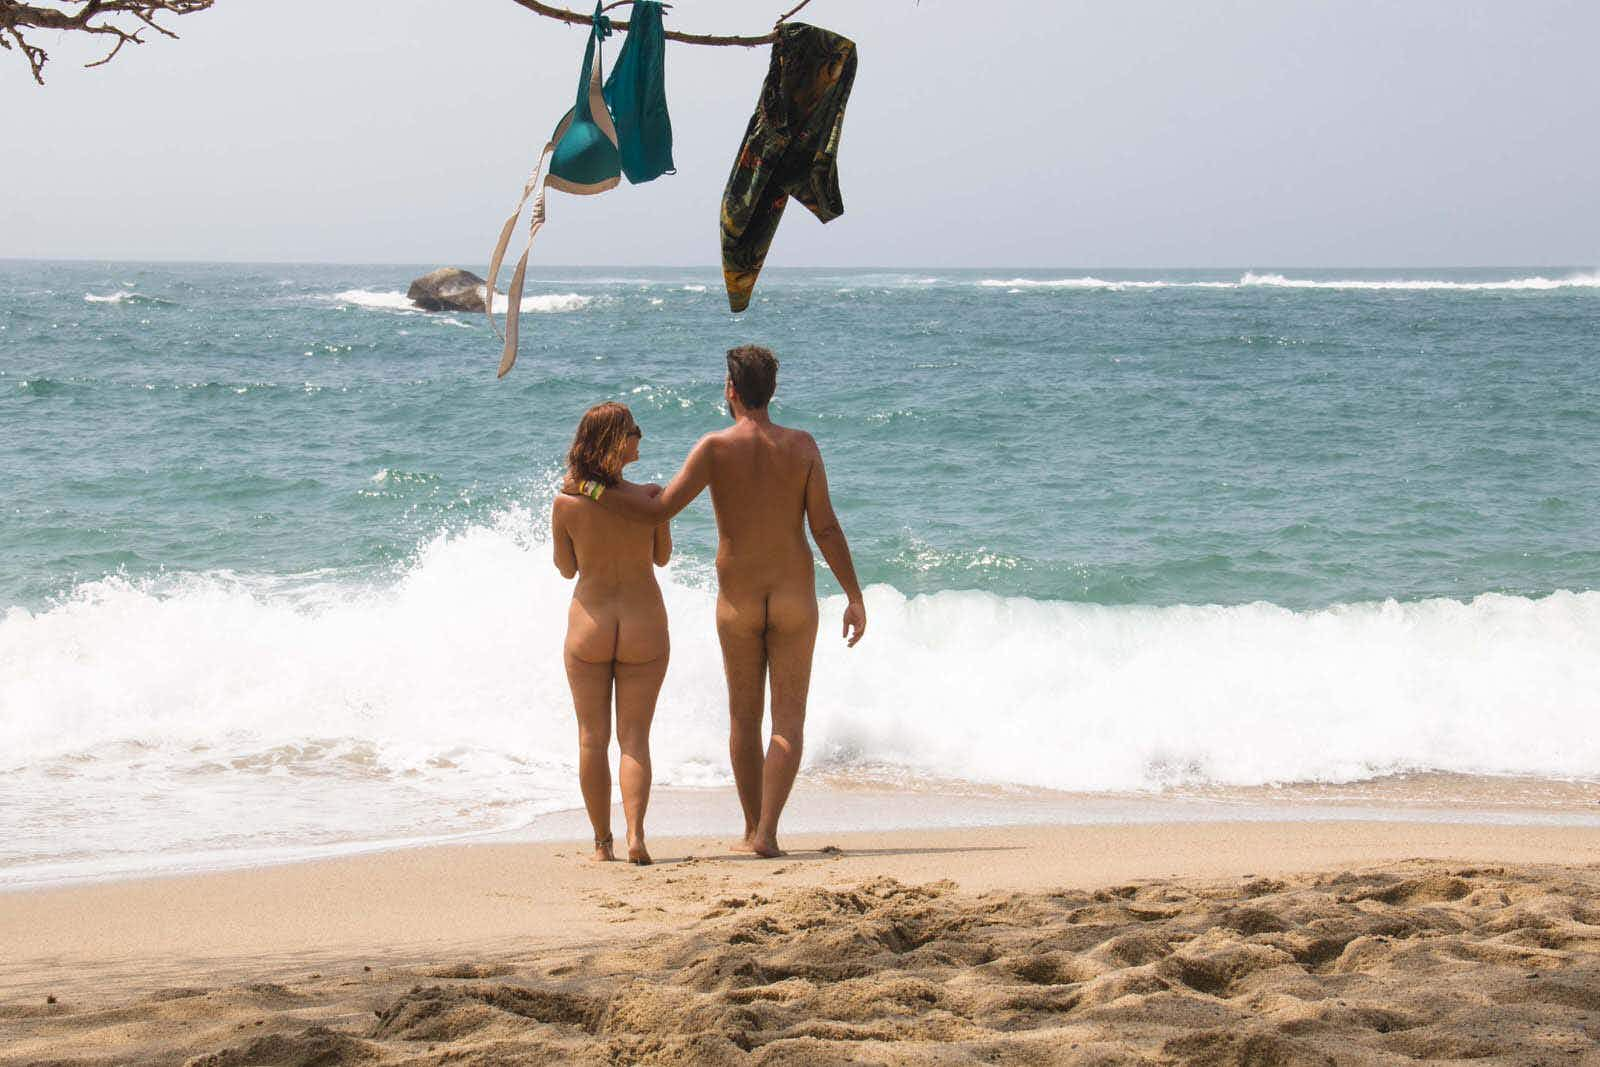 7 best nude beaches to get naked in public for the first ...